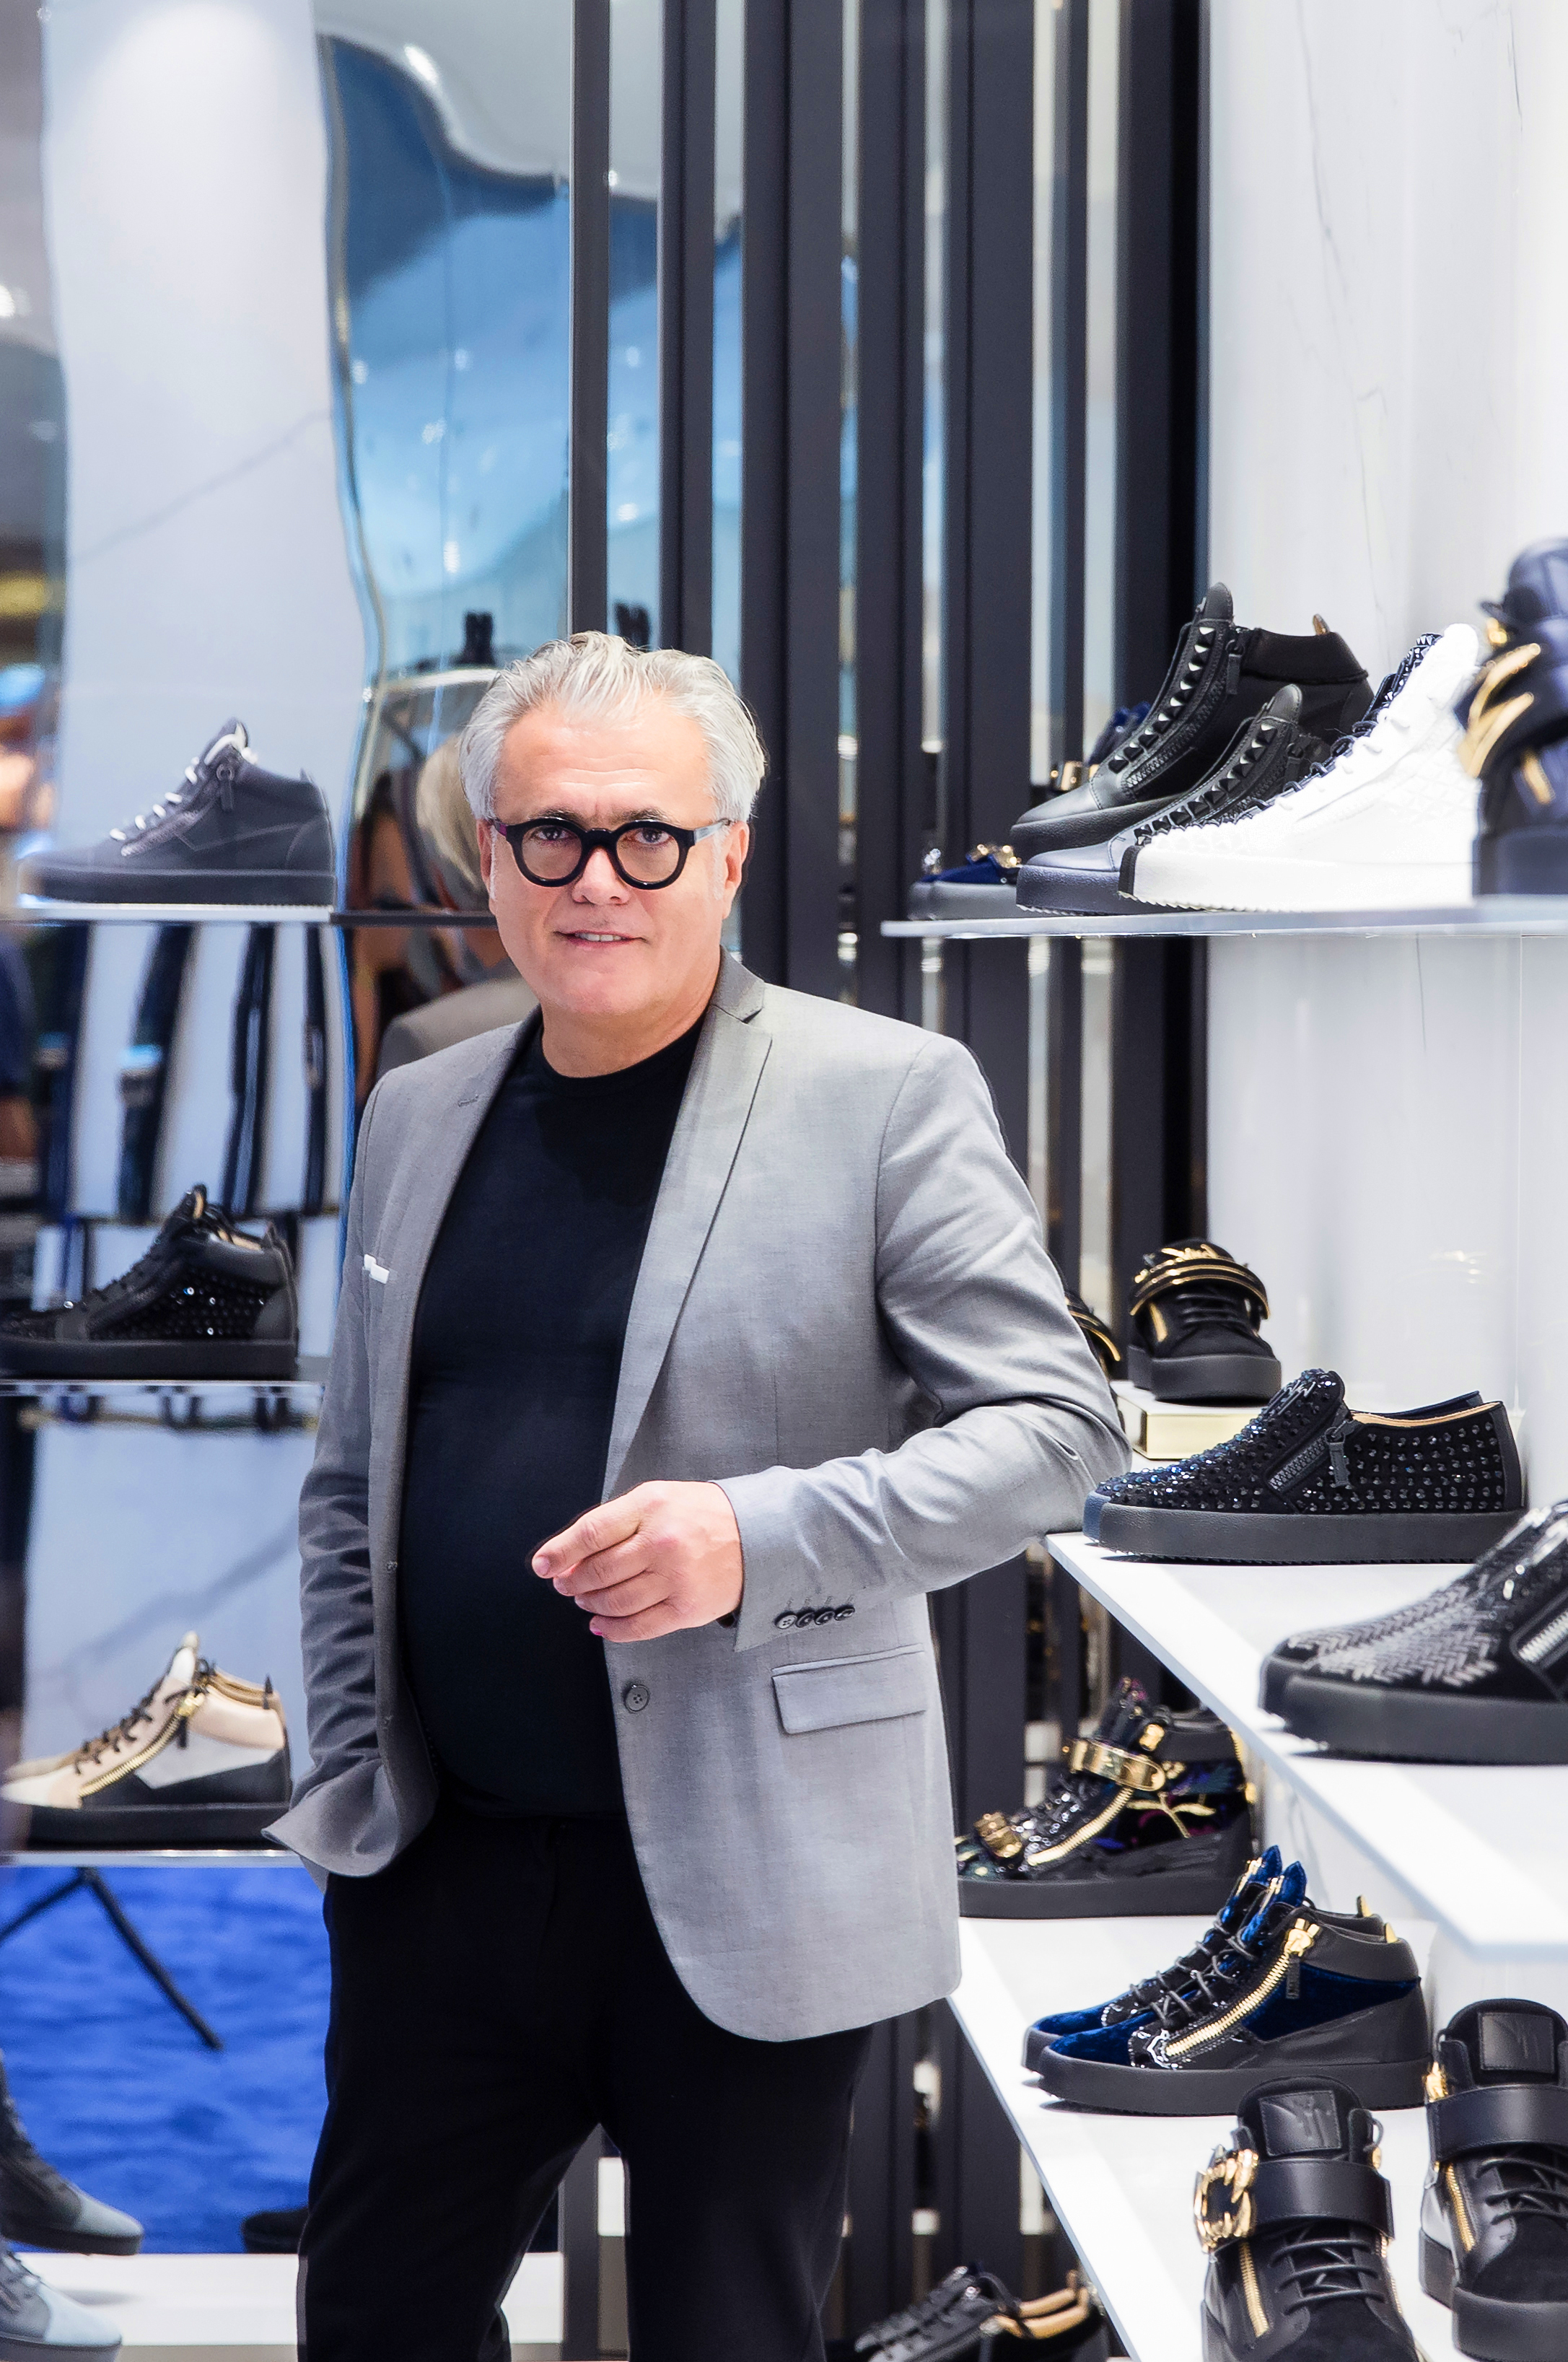 95d577624 Surrounded by sparkly shoes – his sparkly shoes – Giuseppe Zanotti wears a  neat black jacket. He has been taking pictures in his eponymous brand s  renovated ...